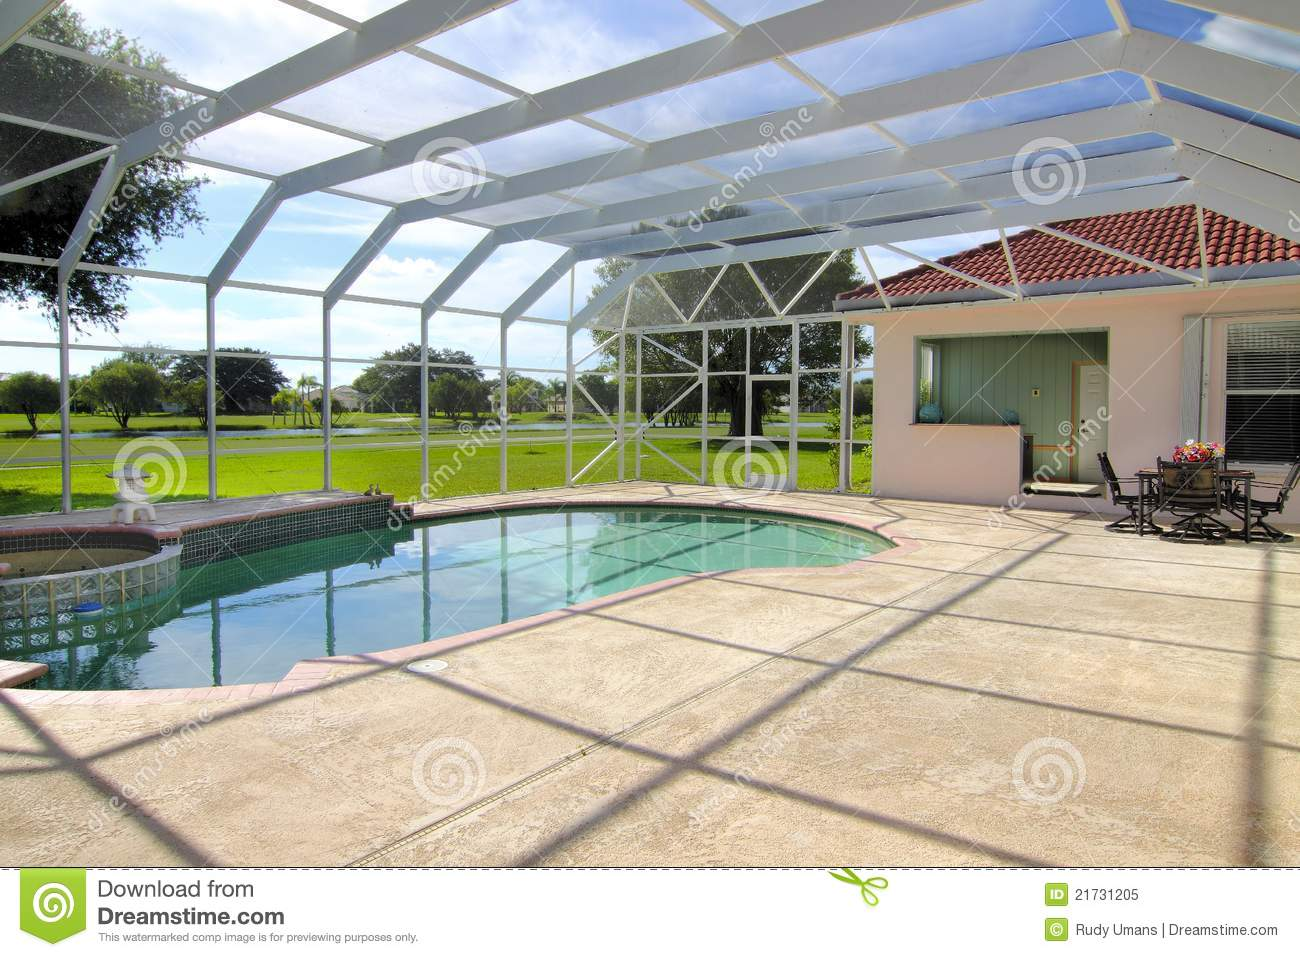 Residential swimming pool royalty free stock photo image for Residential swimming pool